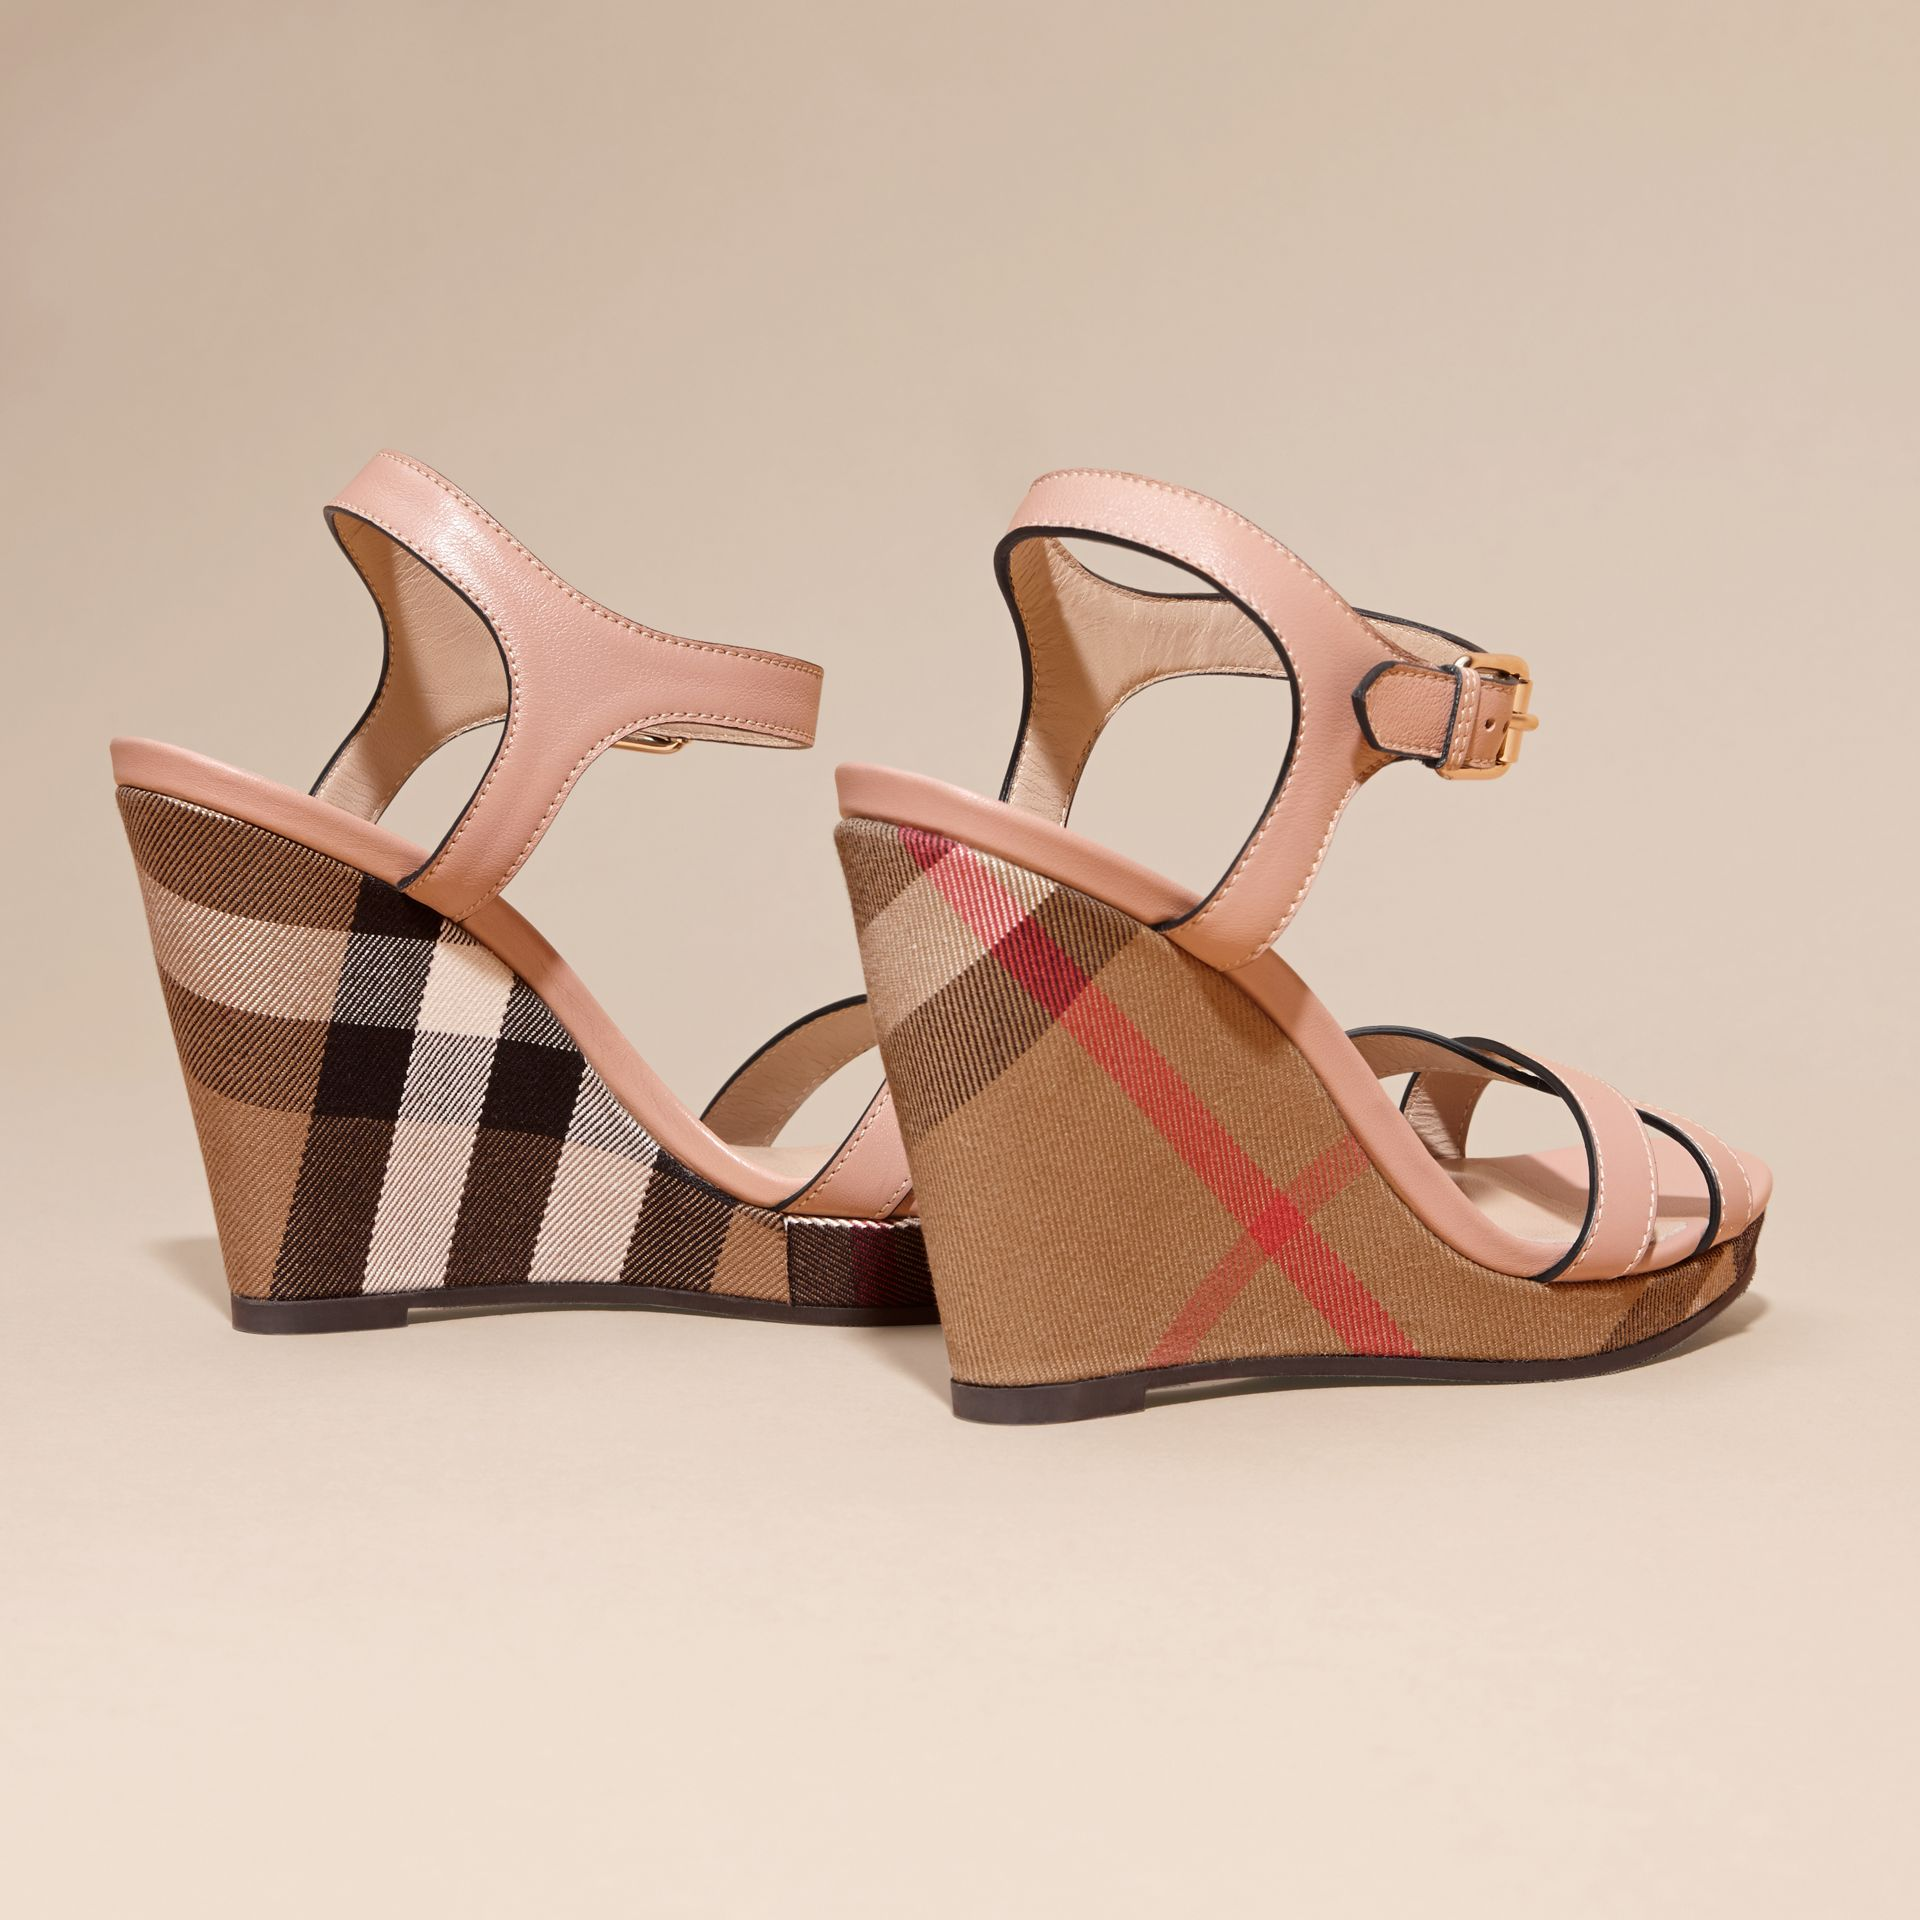 House Check Detail Leather Wedge Sandals in Nude Blush - Women | Burberry Canada - gallery image 4